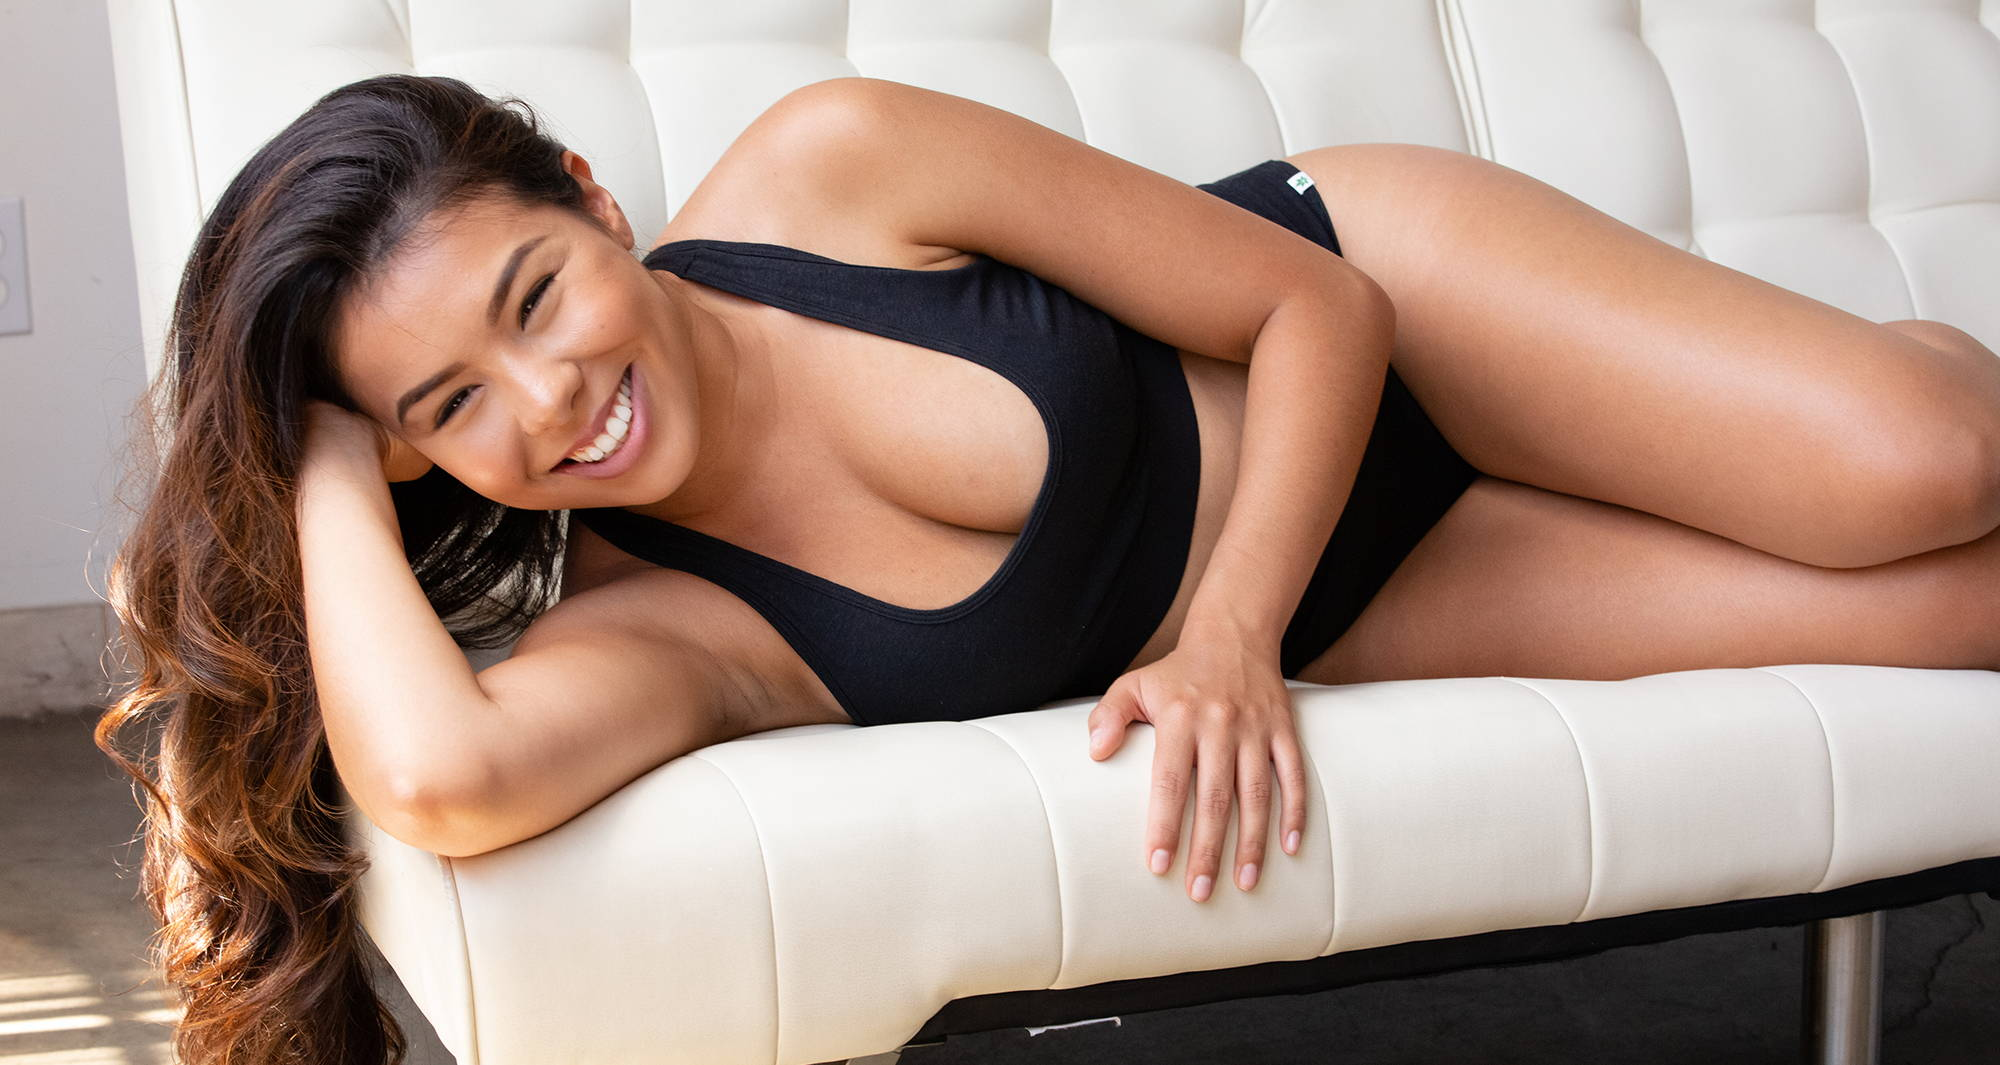 Woman lying on the couch wearing affordable ethical clothing from WAMA Underwear.